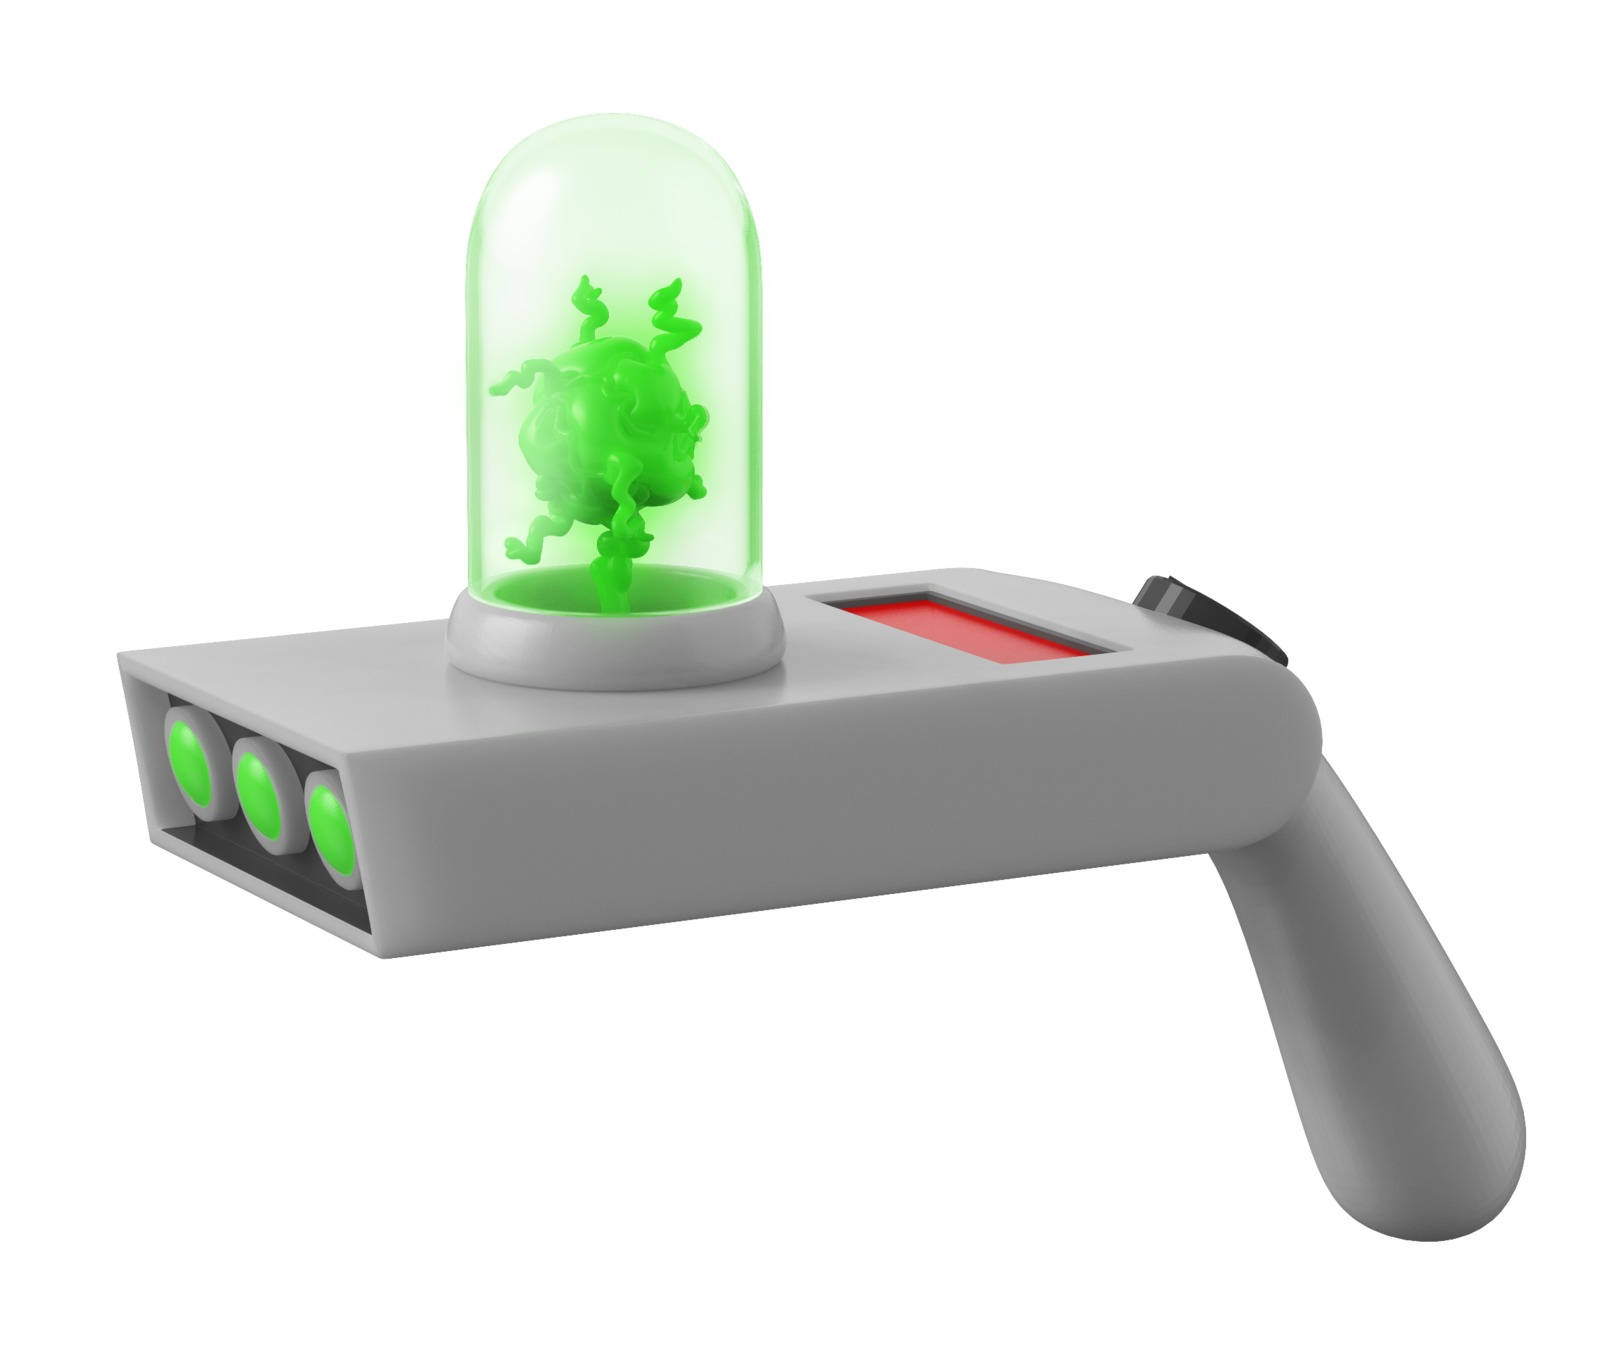 Rick & Morty - Replica Portal Gun image